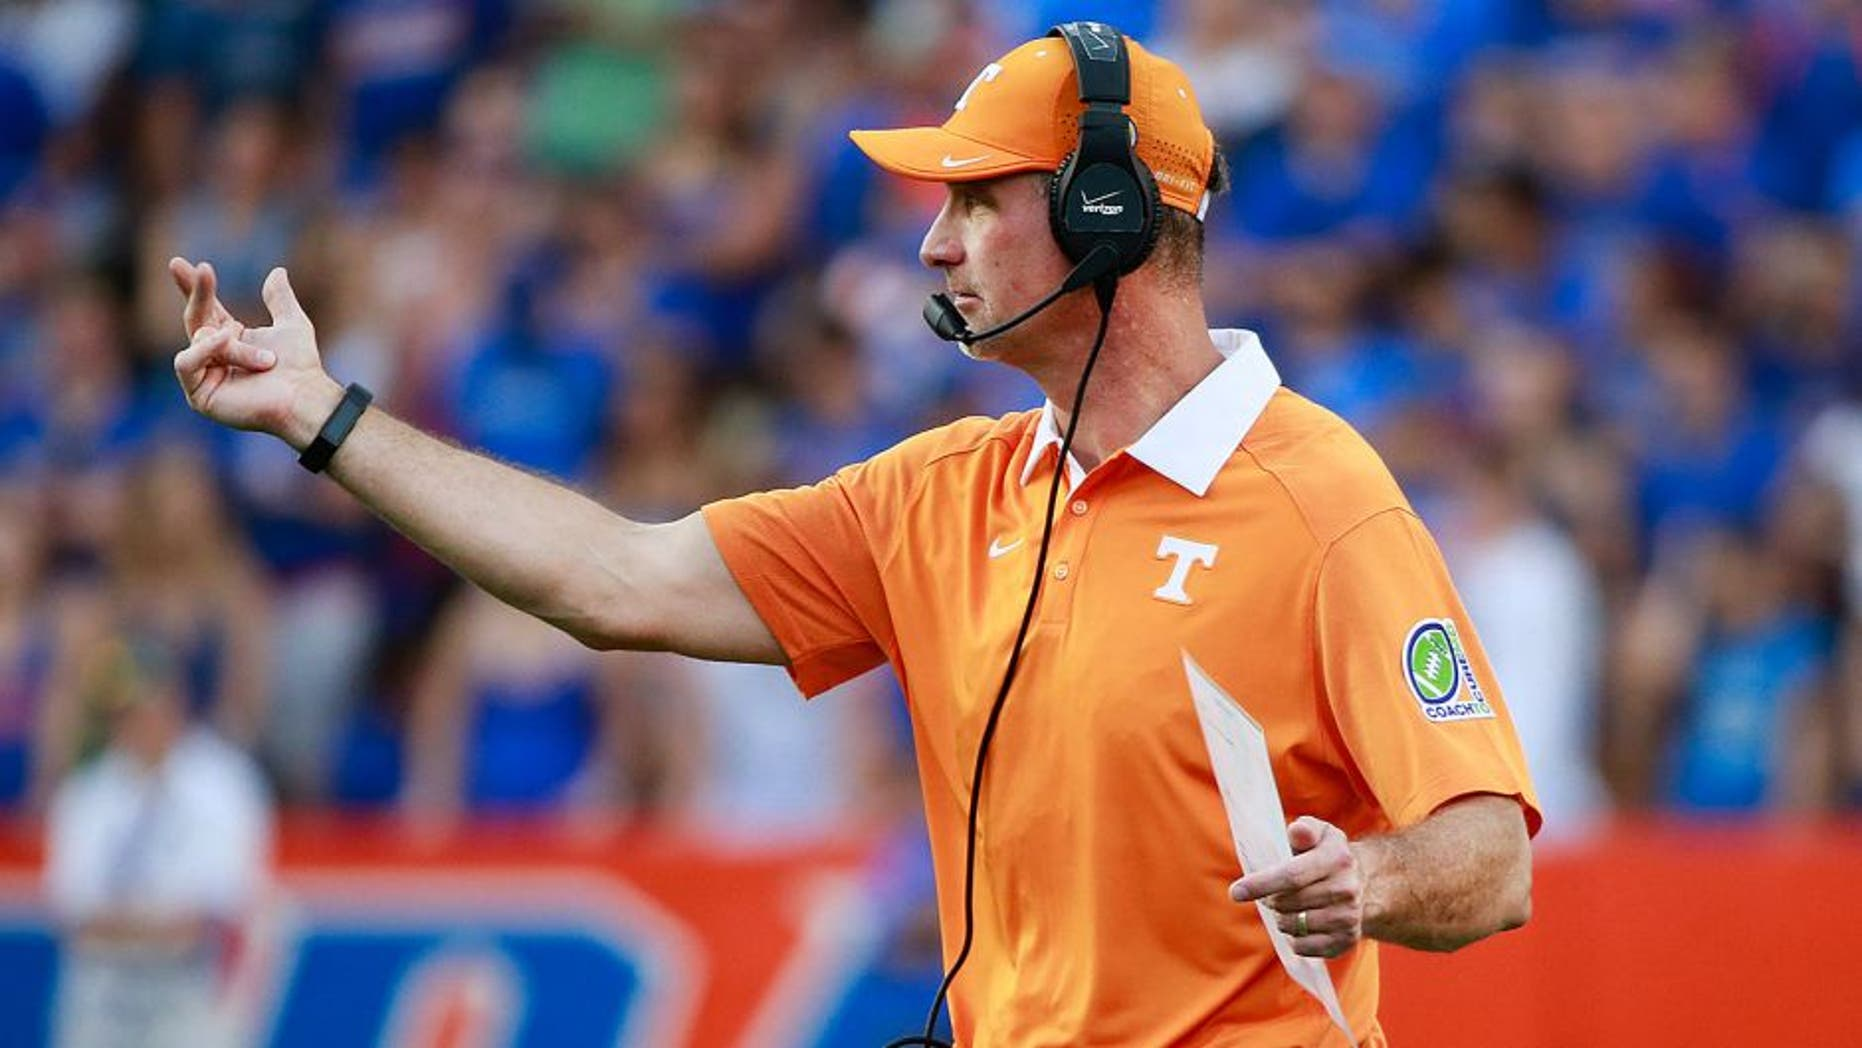 Sep 26, 2015; Gainesville, FL, USA; Tennessee Volunteers defensive coordinator John Jancek during the second half at Ben Hill Griffin Stadium. Florida Gators defeated the Tennessee Volunteers 28-27. Mandatory Credit: Kim Klement-USA TODAY Sports